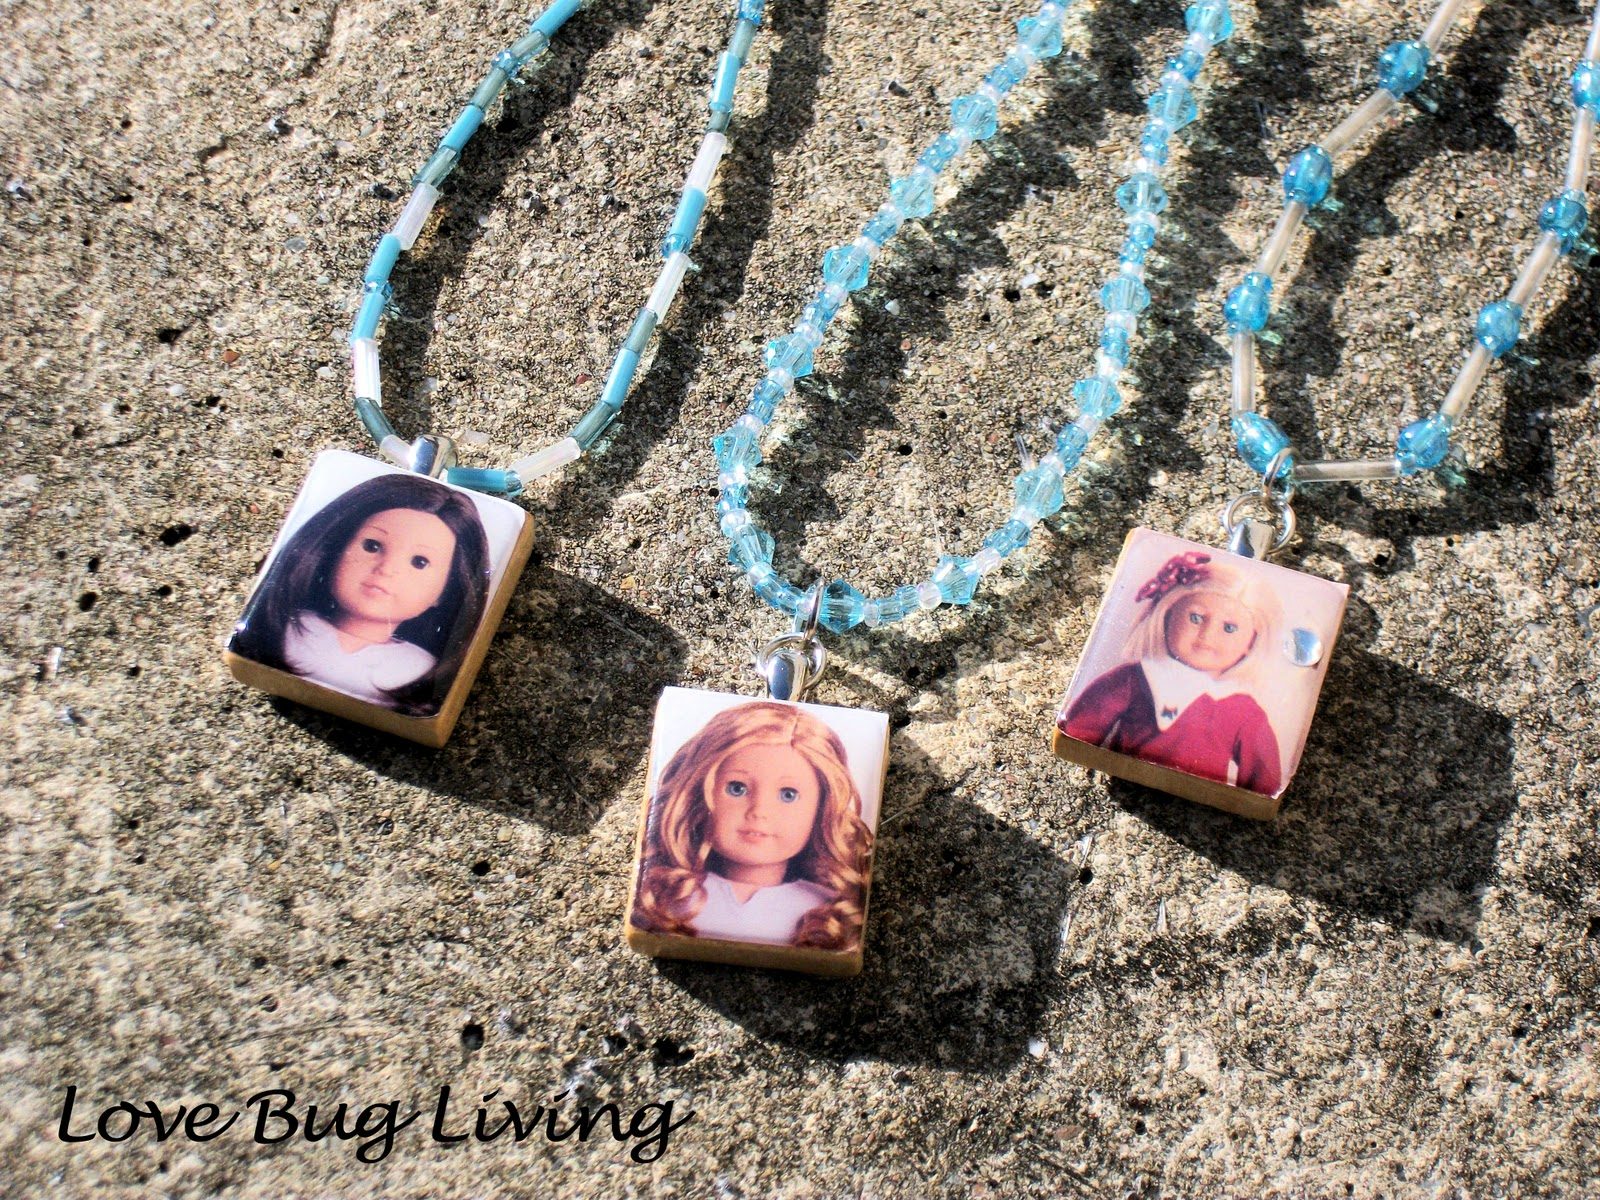 Love bug living american girl scrabble tile pendant necklace american girl scrabble tile pendant necklace aloadofball Image collections